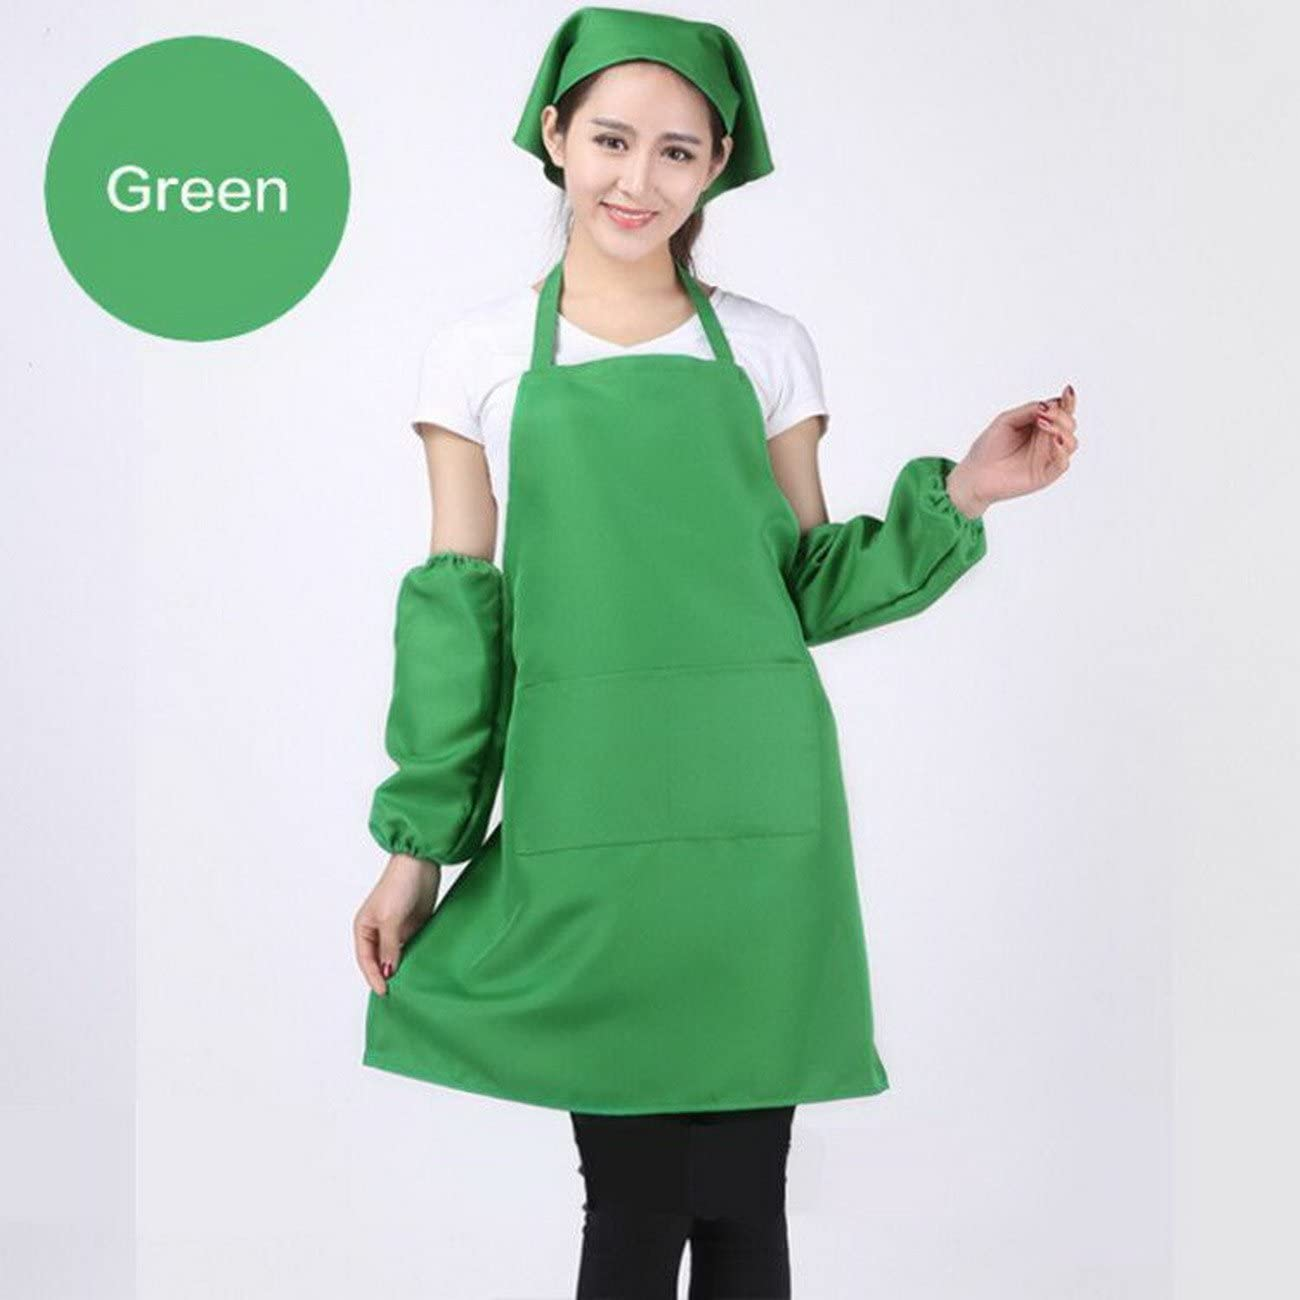 geranjie Fashion Unisex Aprons with Front Pocket Chefs Butchers Home Kitchen Restaurant Cookware Craft Baking Cooking Print Logo Image